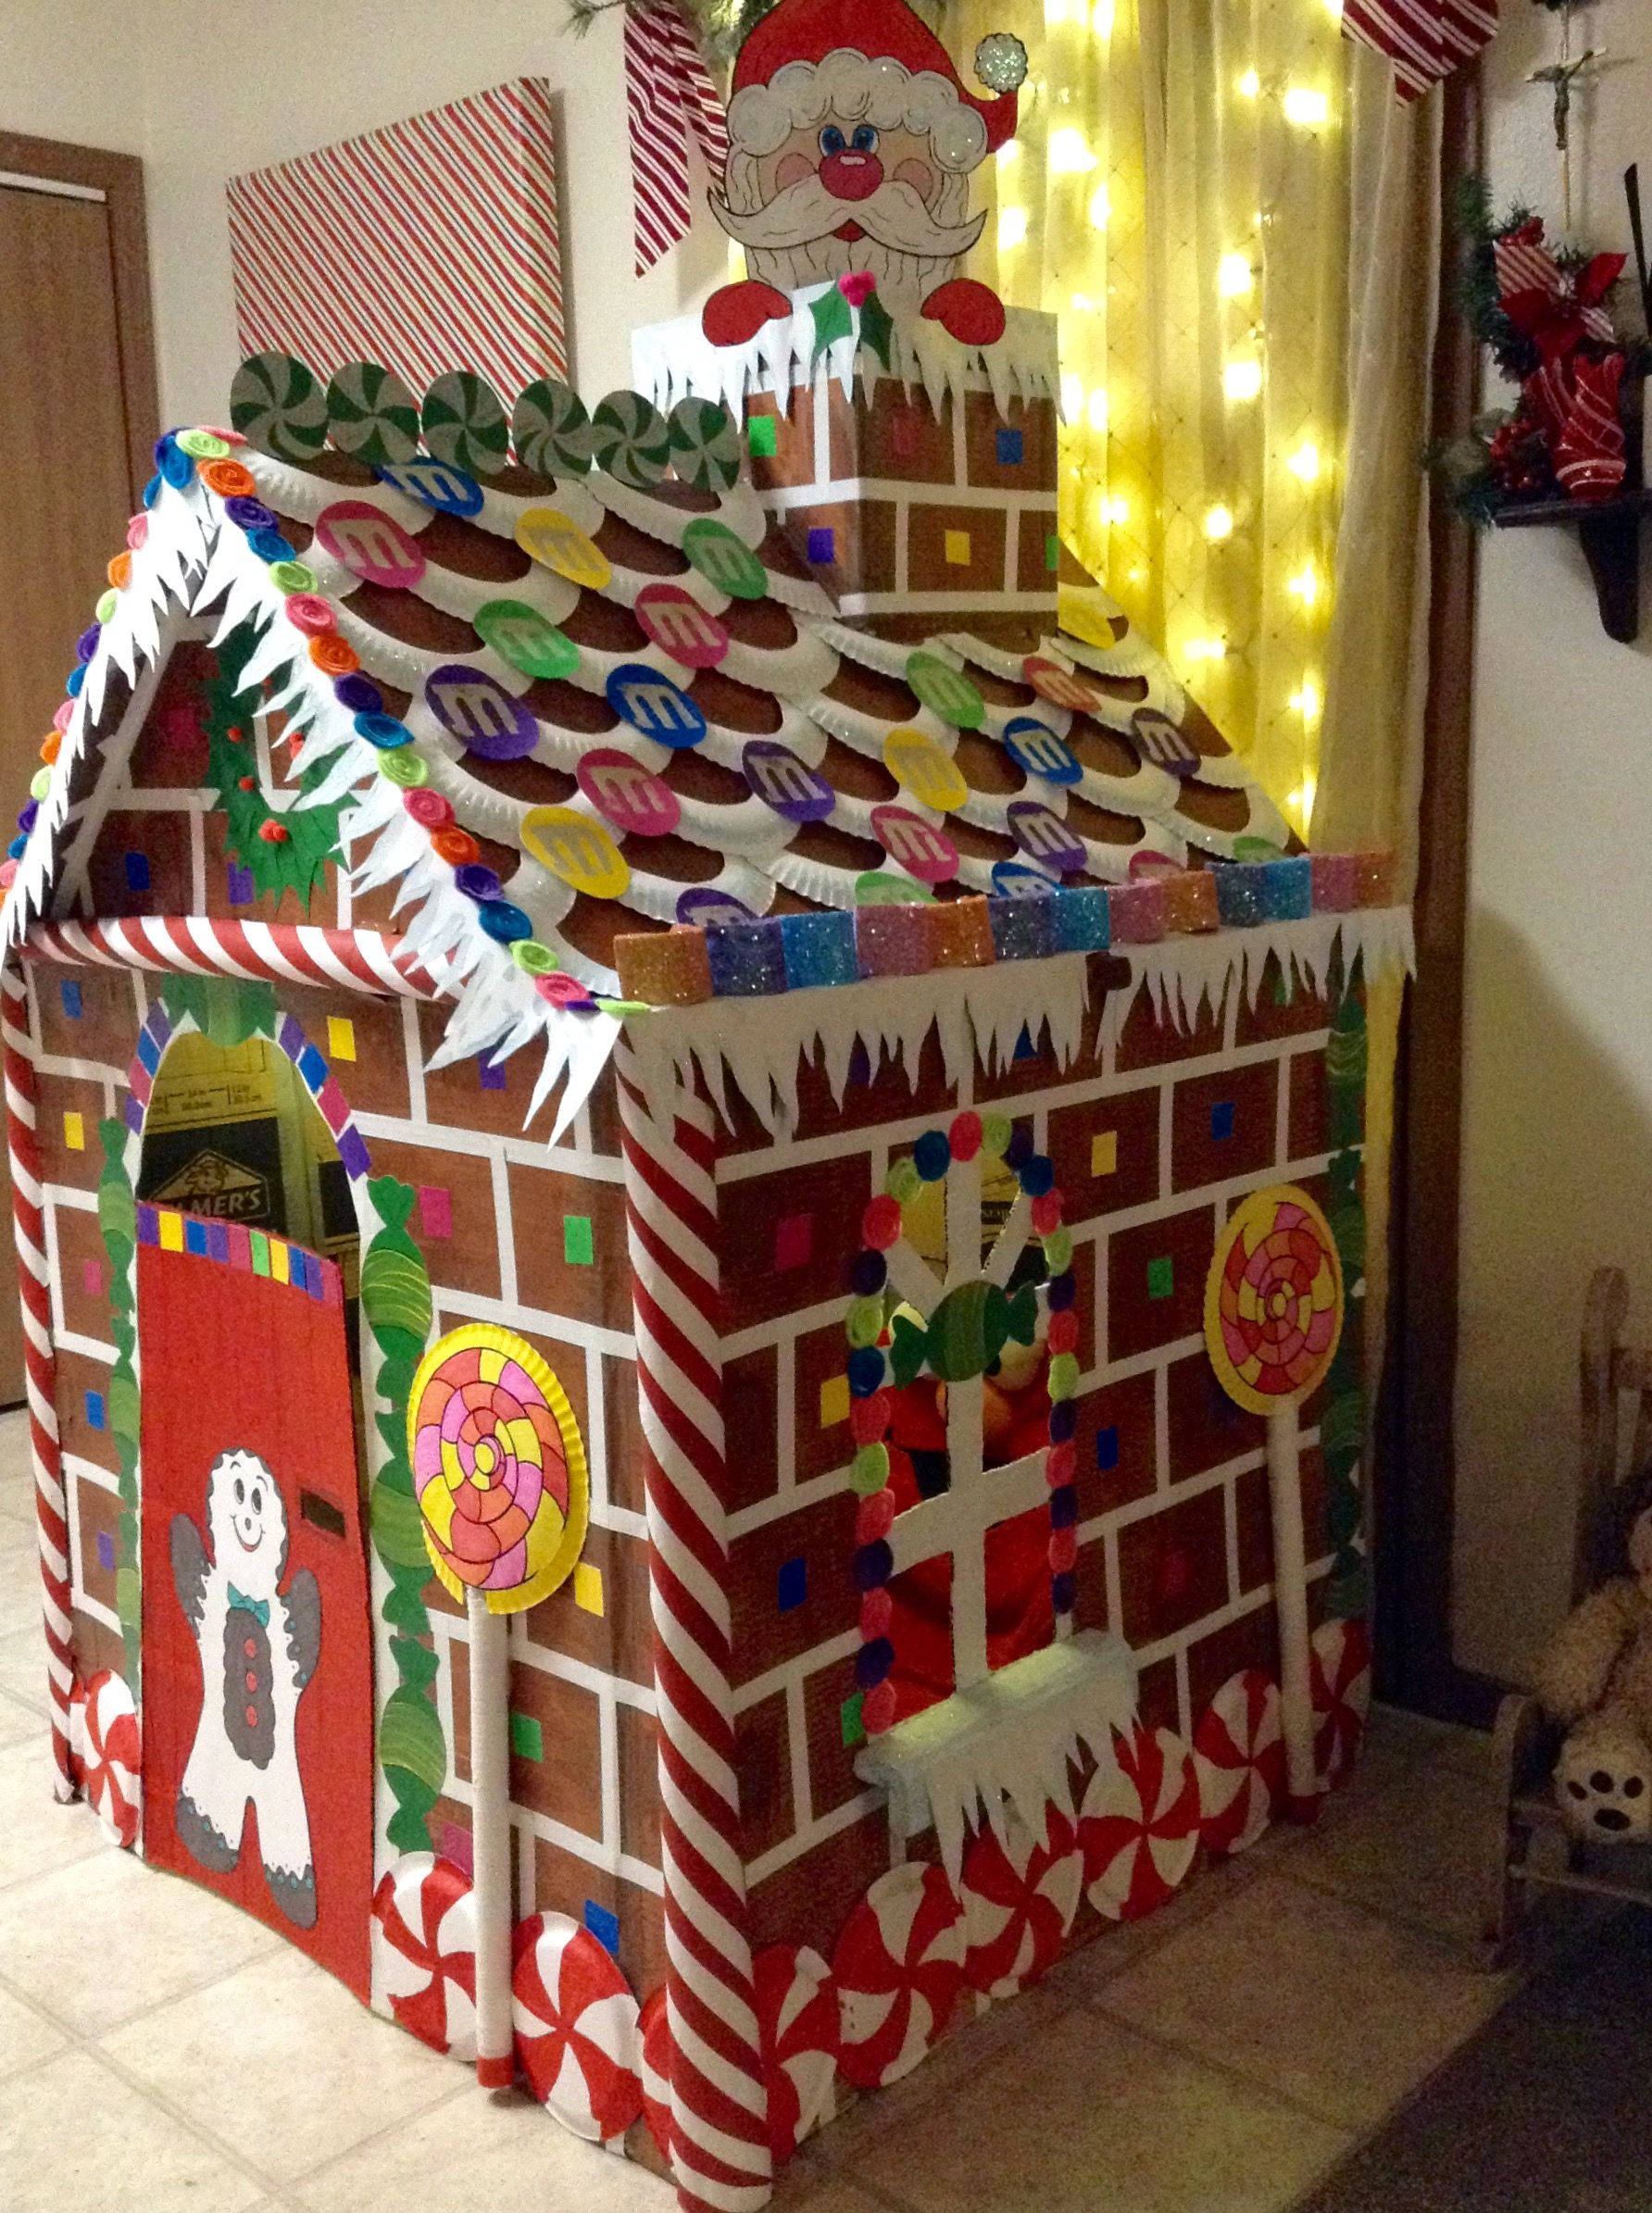 Life Size Gingerbread House Gingerbread House Decorations